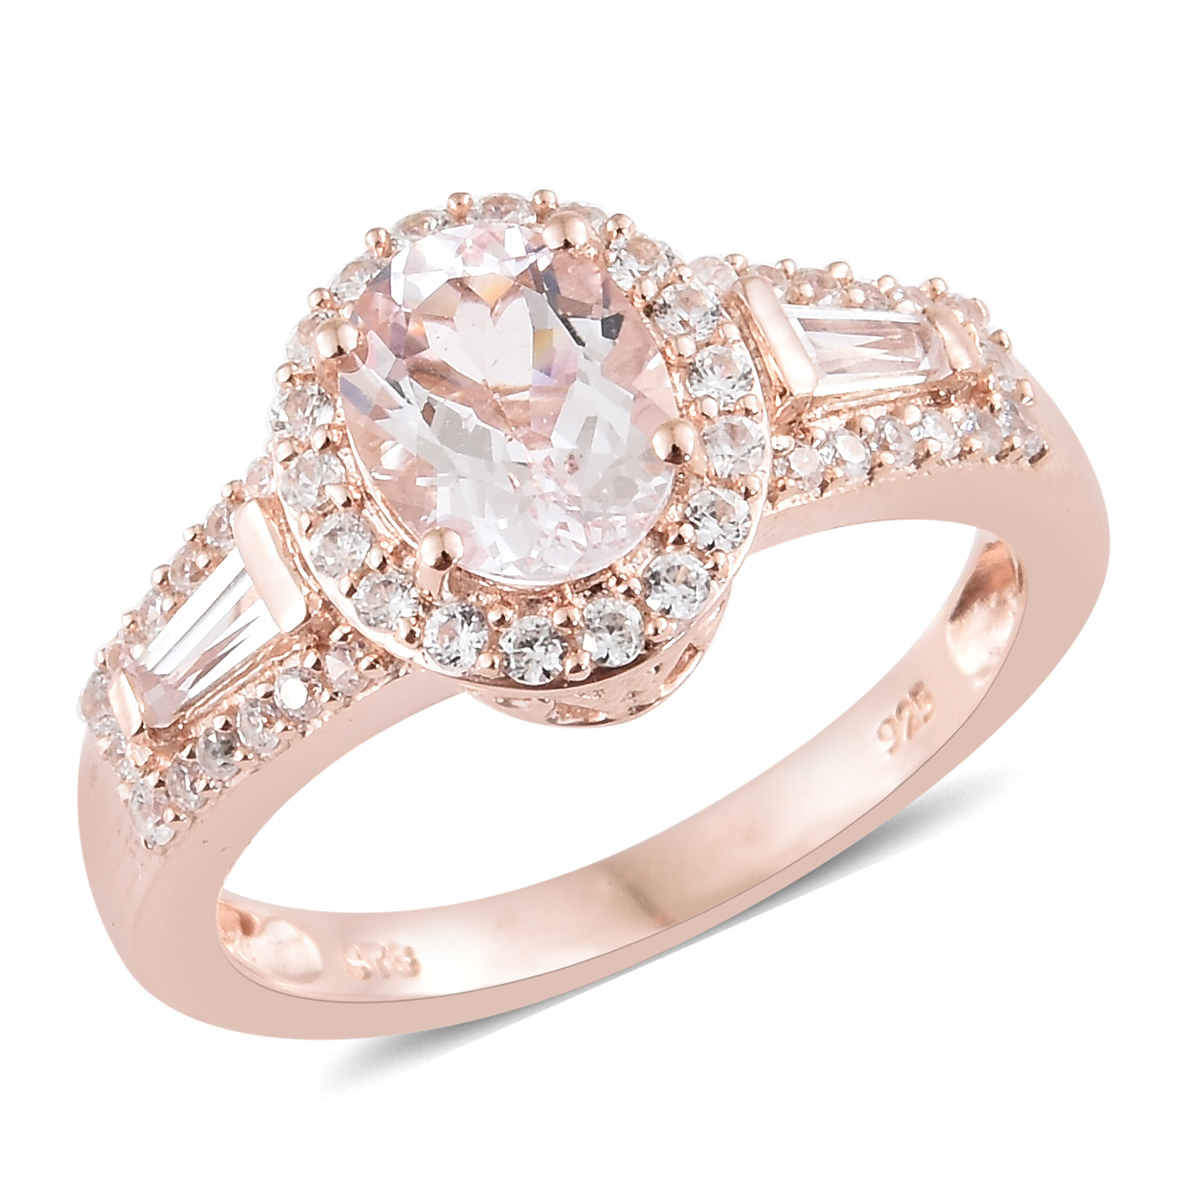 38bc11ff5991c Pink Morganite, Zircon Promise Ring in Vermeil Rose Gold Over Sterling  Silver (Size 10.0) 2.60 ctw